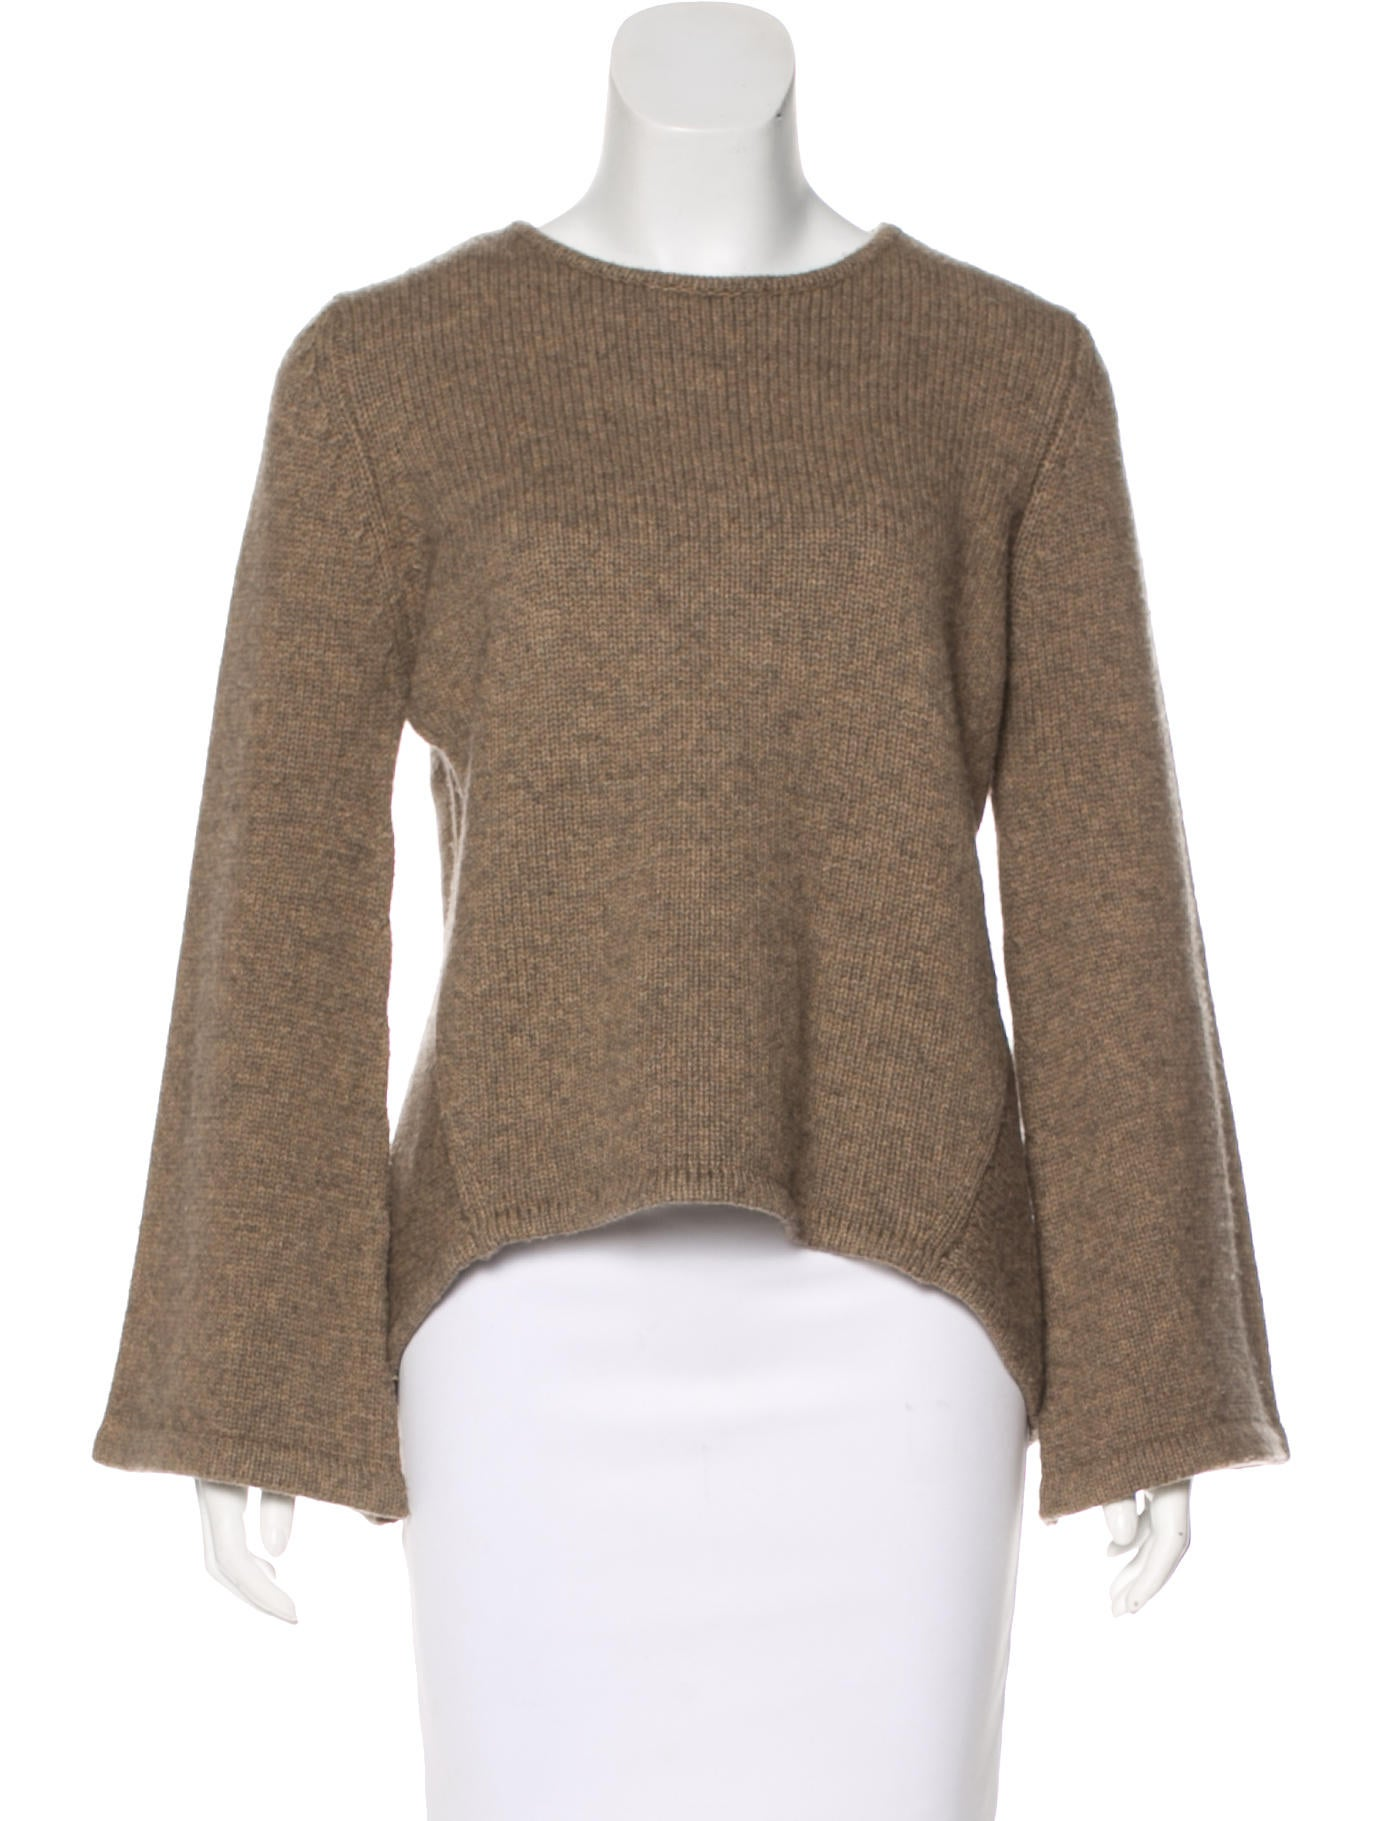 Knitting Wear Company : Co wool knit sweater clothing coo the realreal